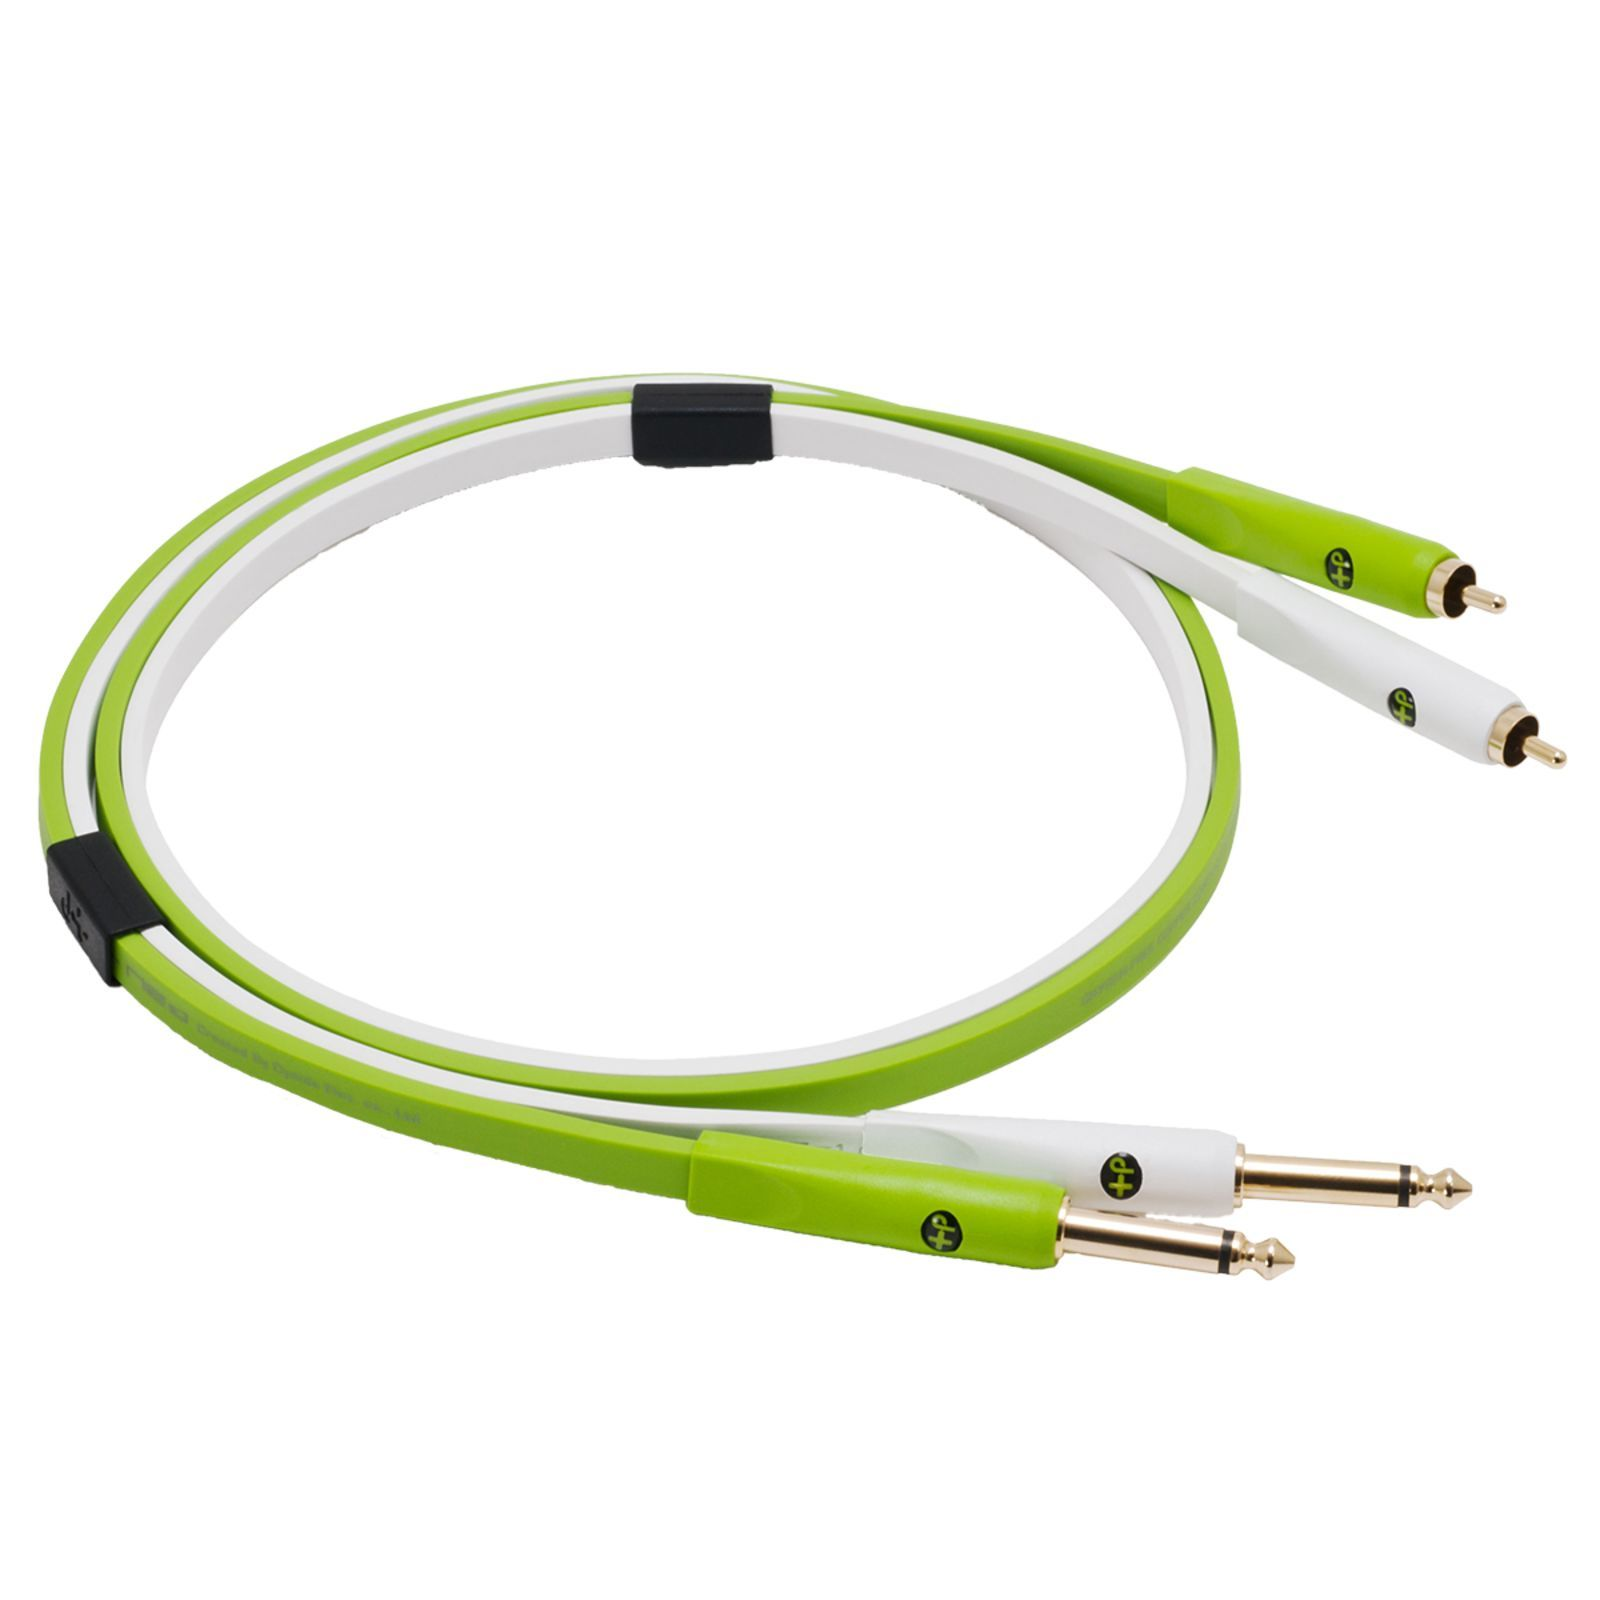 NEO by Oyaide d+ Stereo Cinch/2x6,3mm jack kabel, Class B, 1,0m lengte Productafbeelding